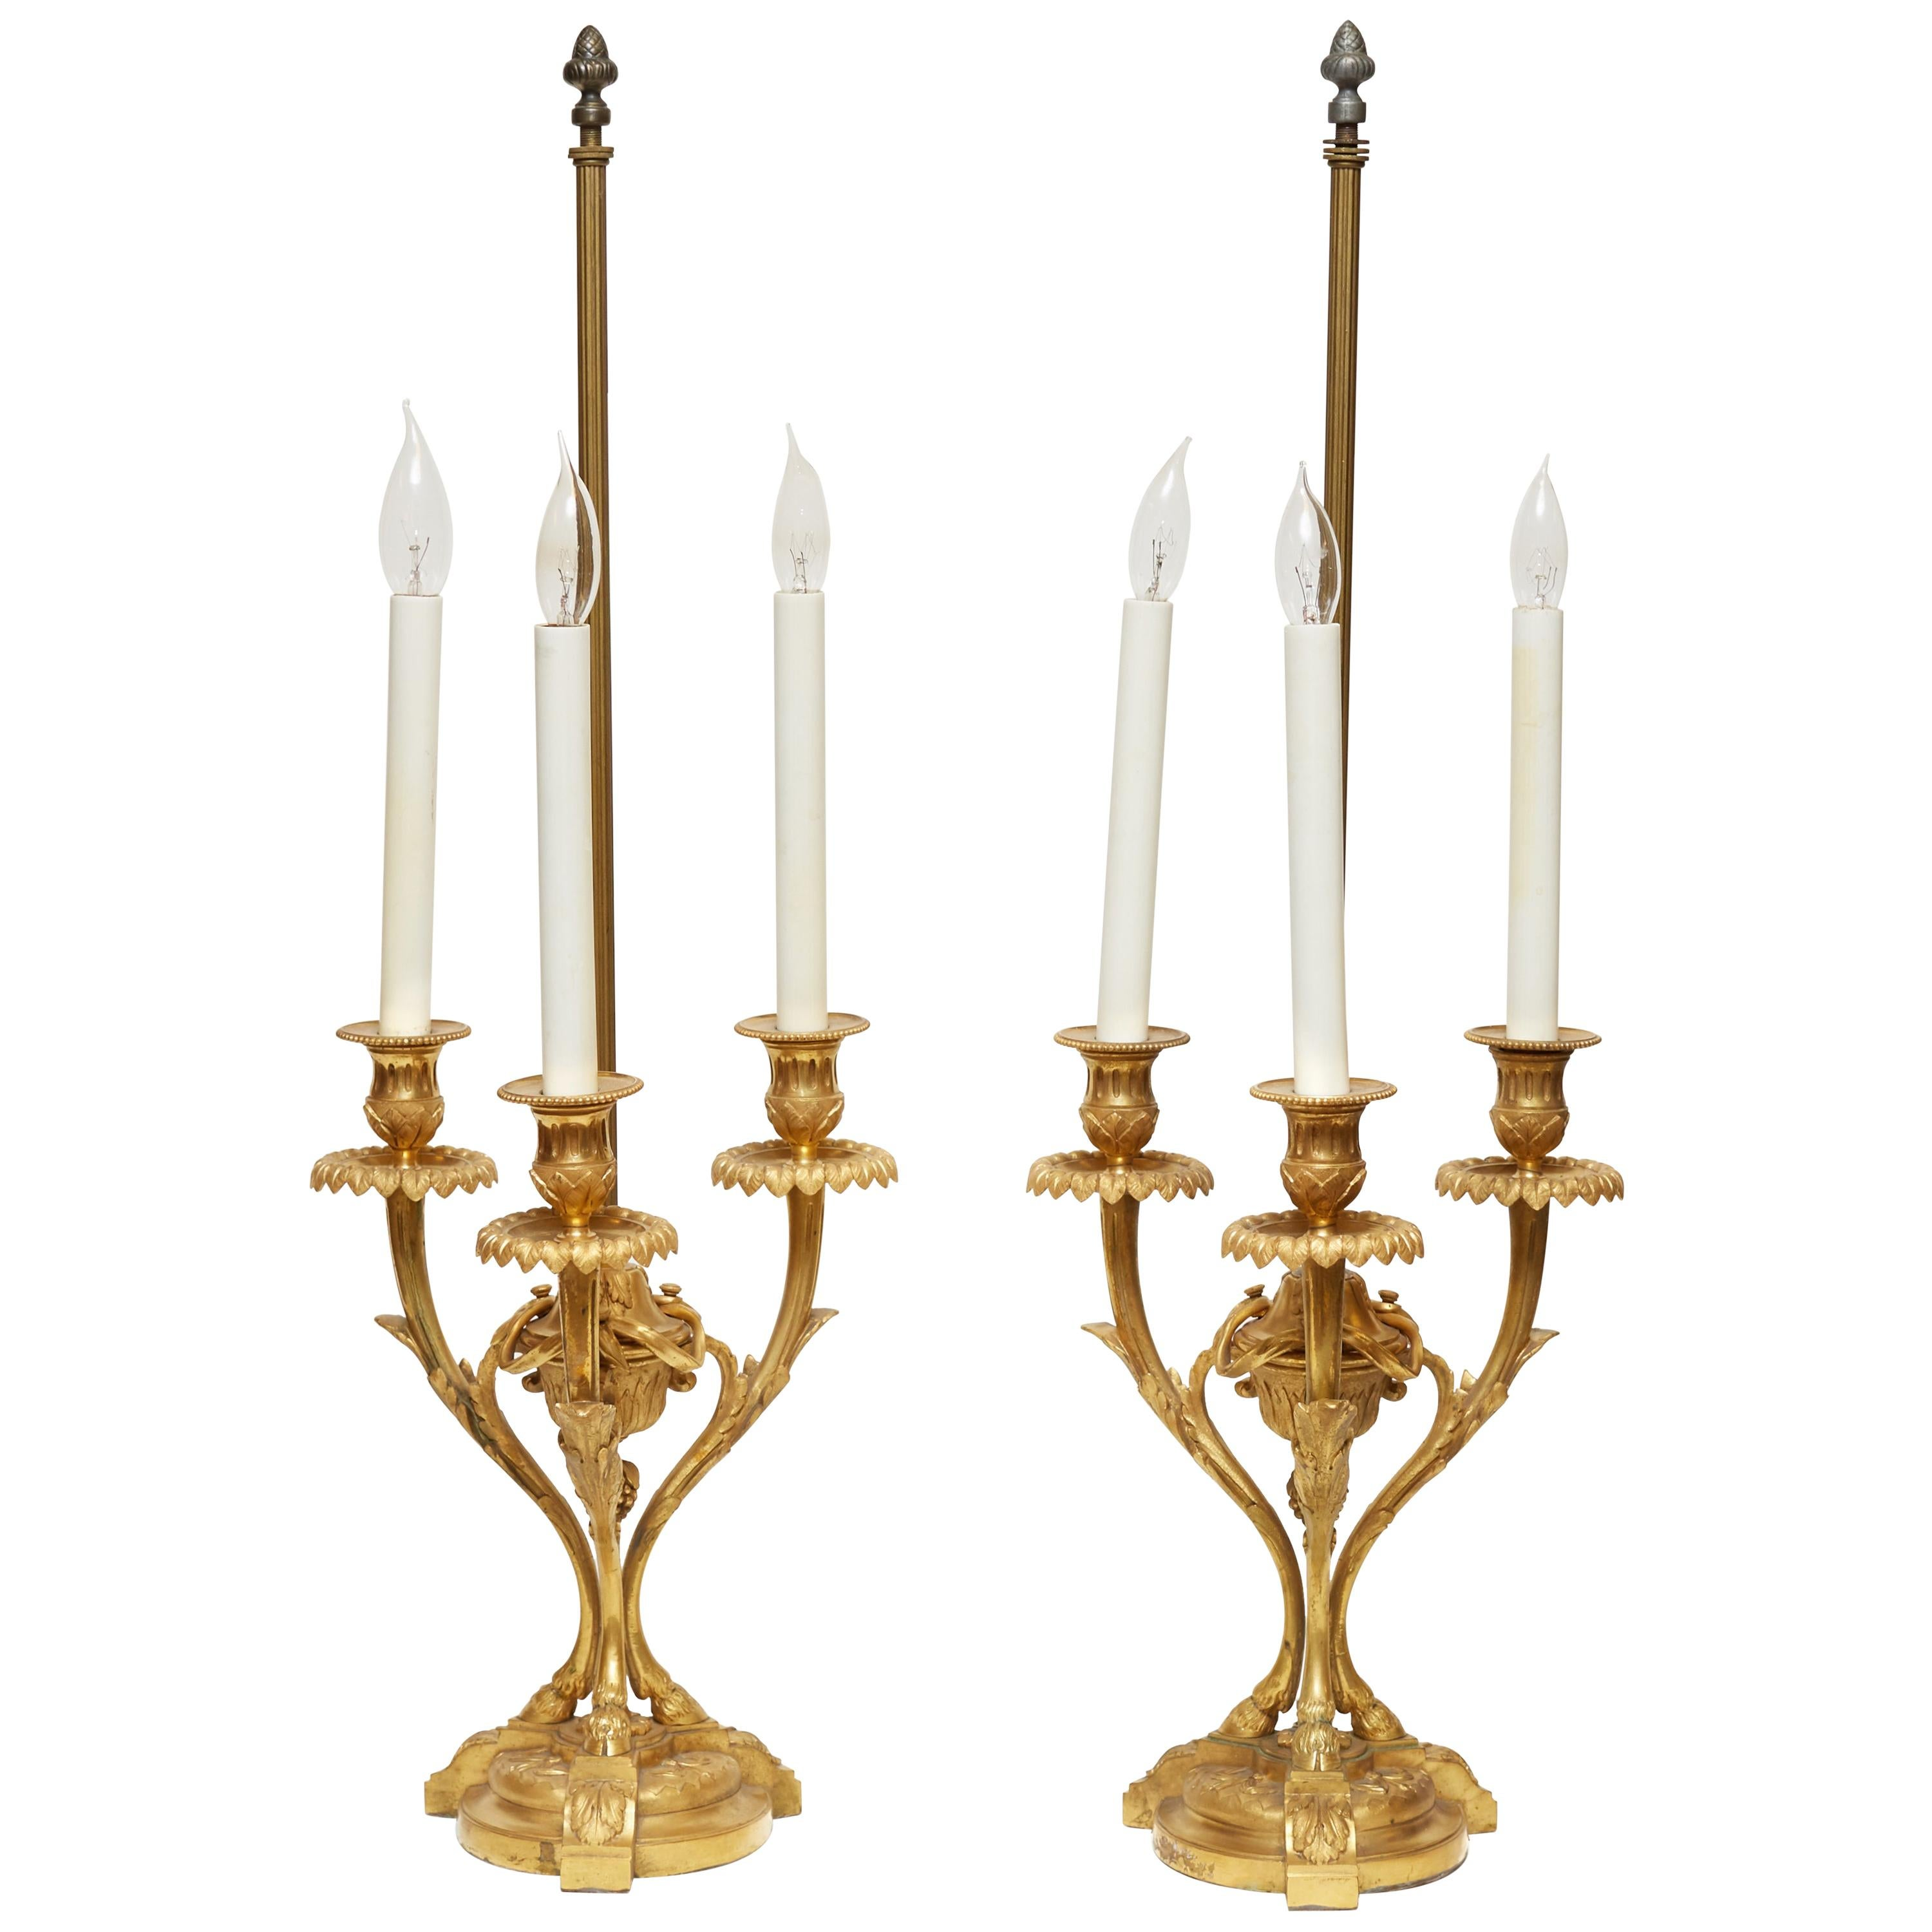 Pair of Louis XVI Style Gilt Bronze Candelabra Lamps